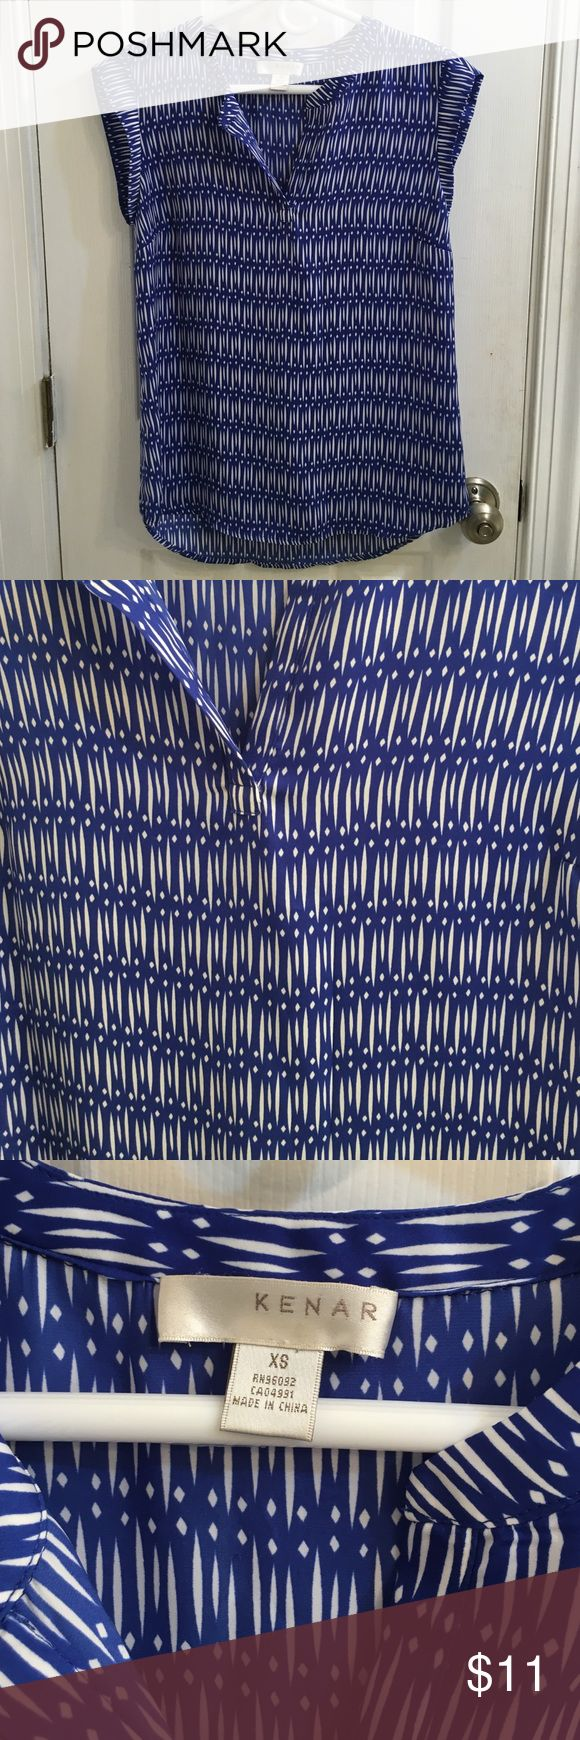 Kenar blue and white blouse Royal blue and white Aztec patterned Blouse from Marshalls. Brand is Kenar. EUC. Size XS fits TTS. Kenar Tops Blouses